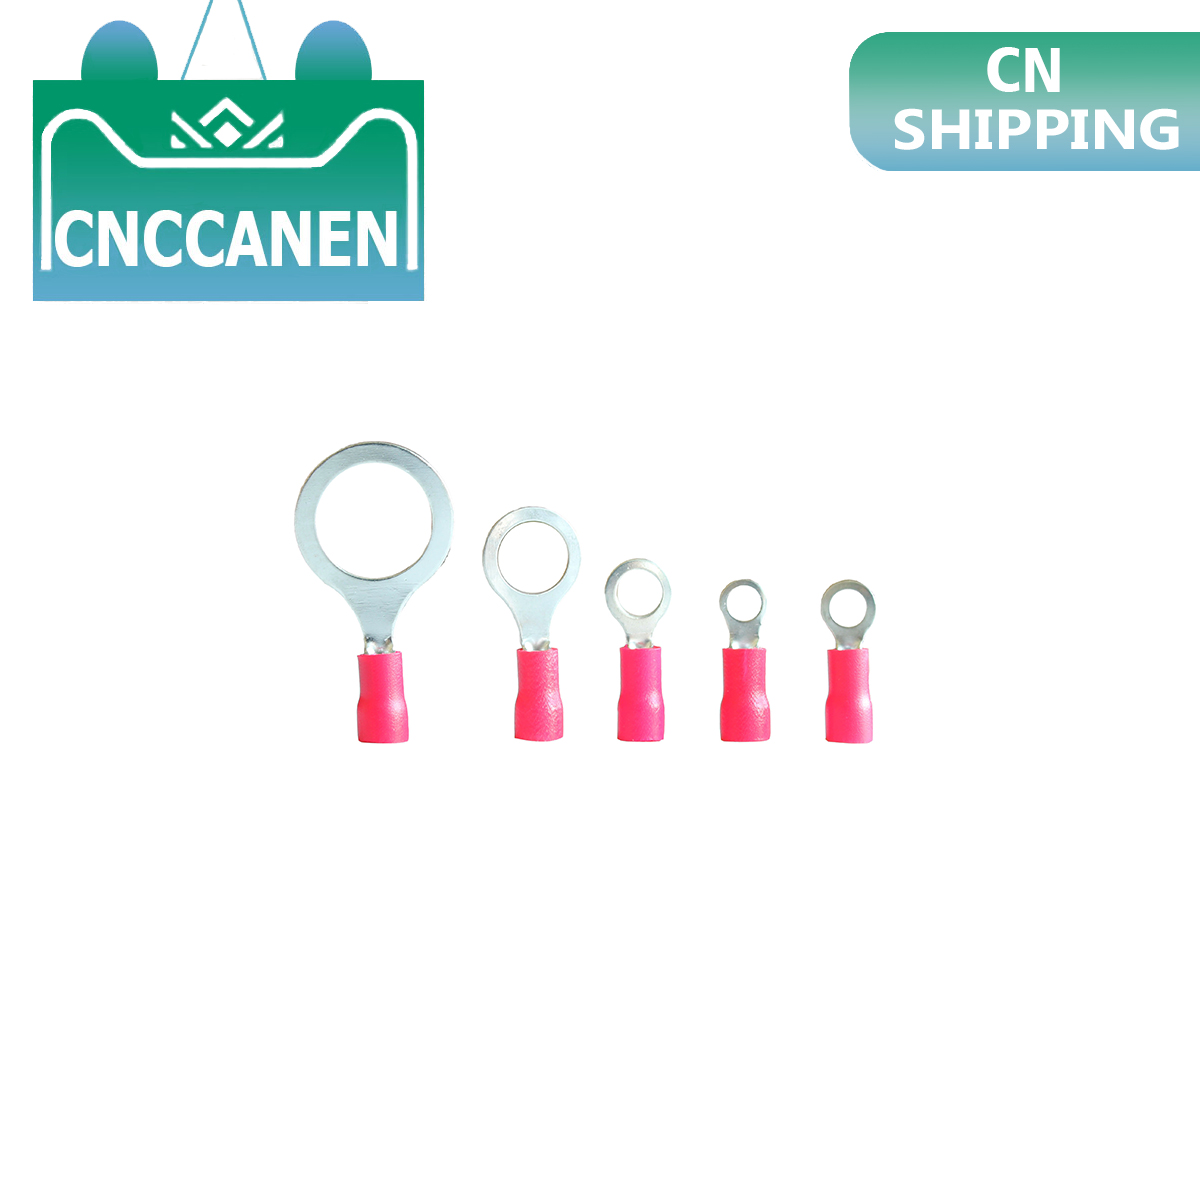 22-16 AWG 0.5-1.5mm2 Insulated Ring Terminal Connector Red M3/M4/M5/M6/M8/M13 PVC Wire Cable Electrical Crimp Terminal